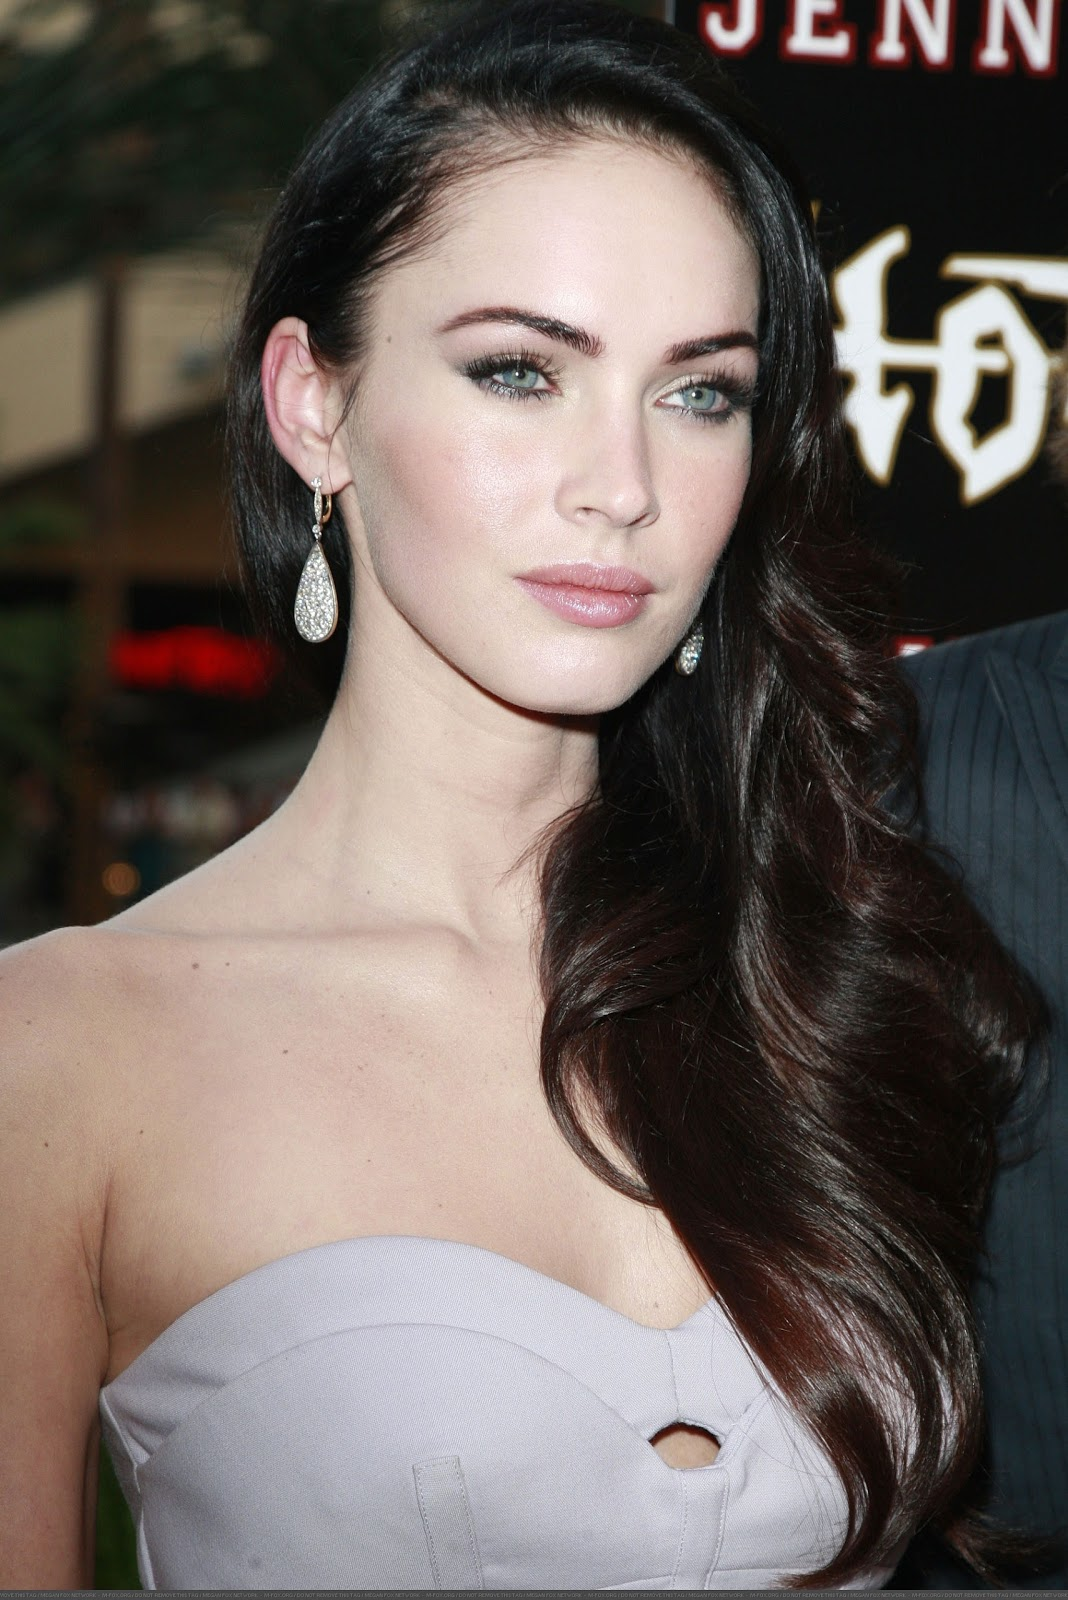 http://2.bp.blogspot.com/_prOe4Hc8qRM/TRFNlvGj0EI/AAAAAAAAAD0/c9JQxrc3sb4/s1600/32761_Megan_Fox_attends_the_Jennifers_Body_Fan_Event_at_Hollywood_and_Highland_-_September_16_2009_5385__122_473lo.jpg